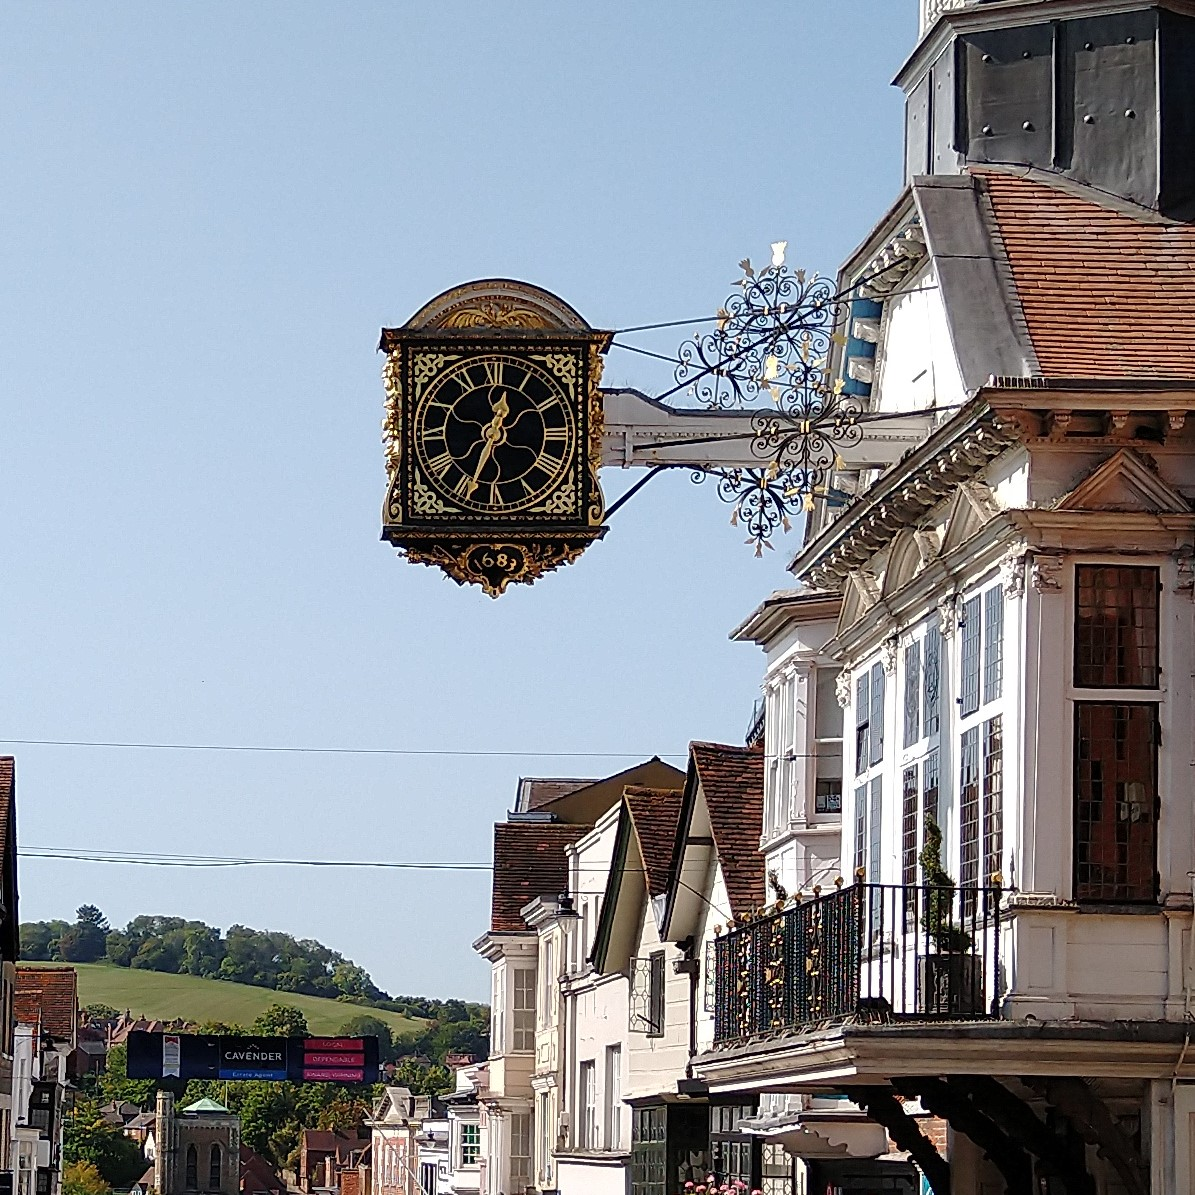 Guildford's famous Guildhall clock on the High Street with the Hog's Back in the background.